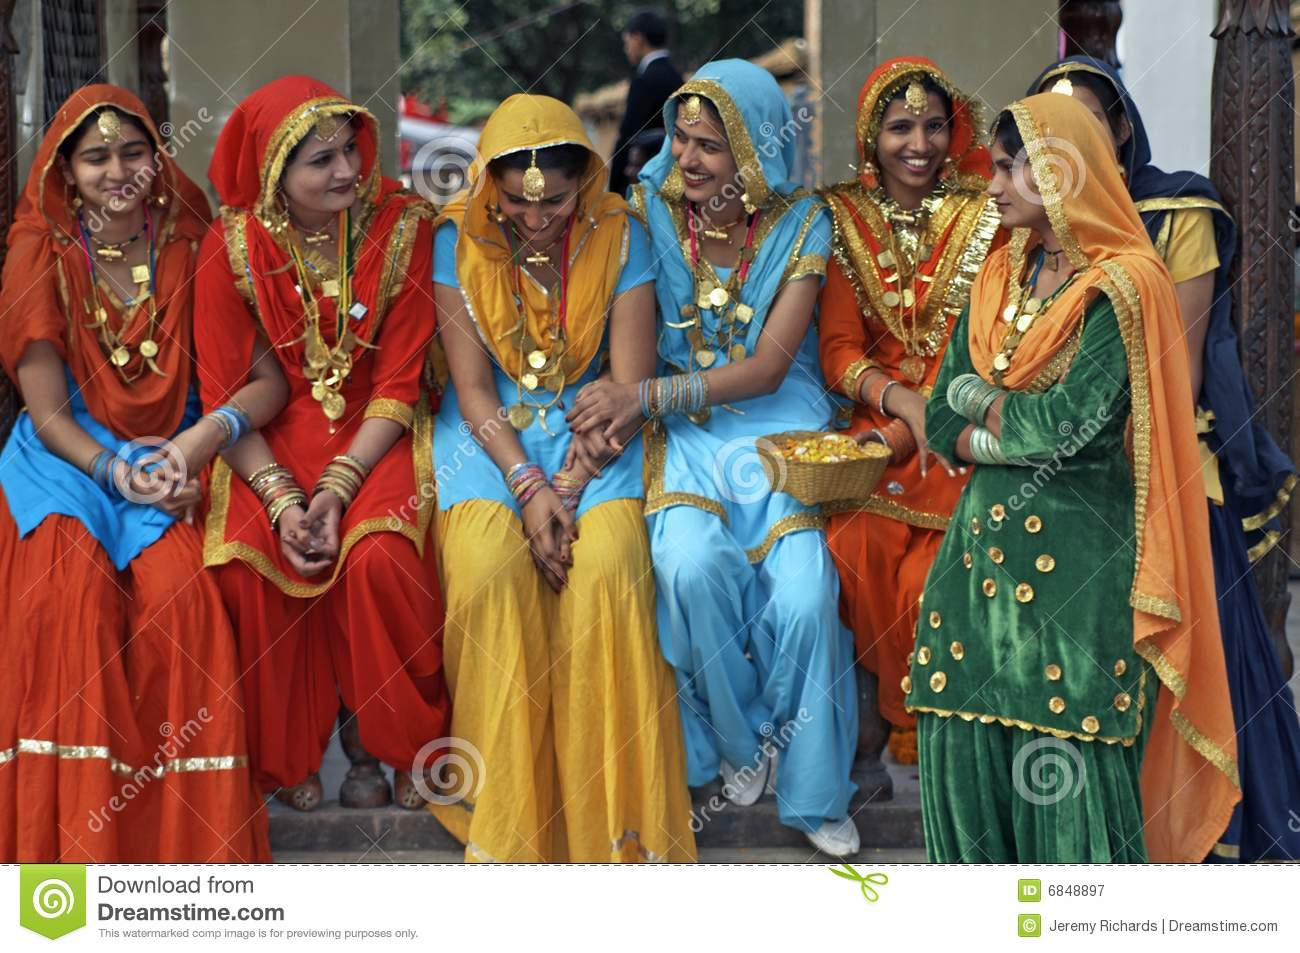 Group of colorfully dressed Indian ladies at the annual Surajkund Mela ...